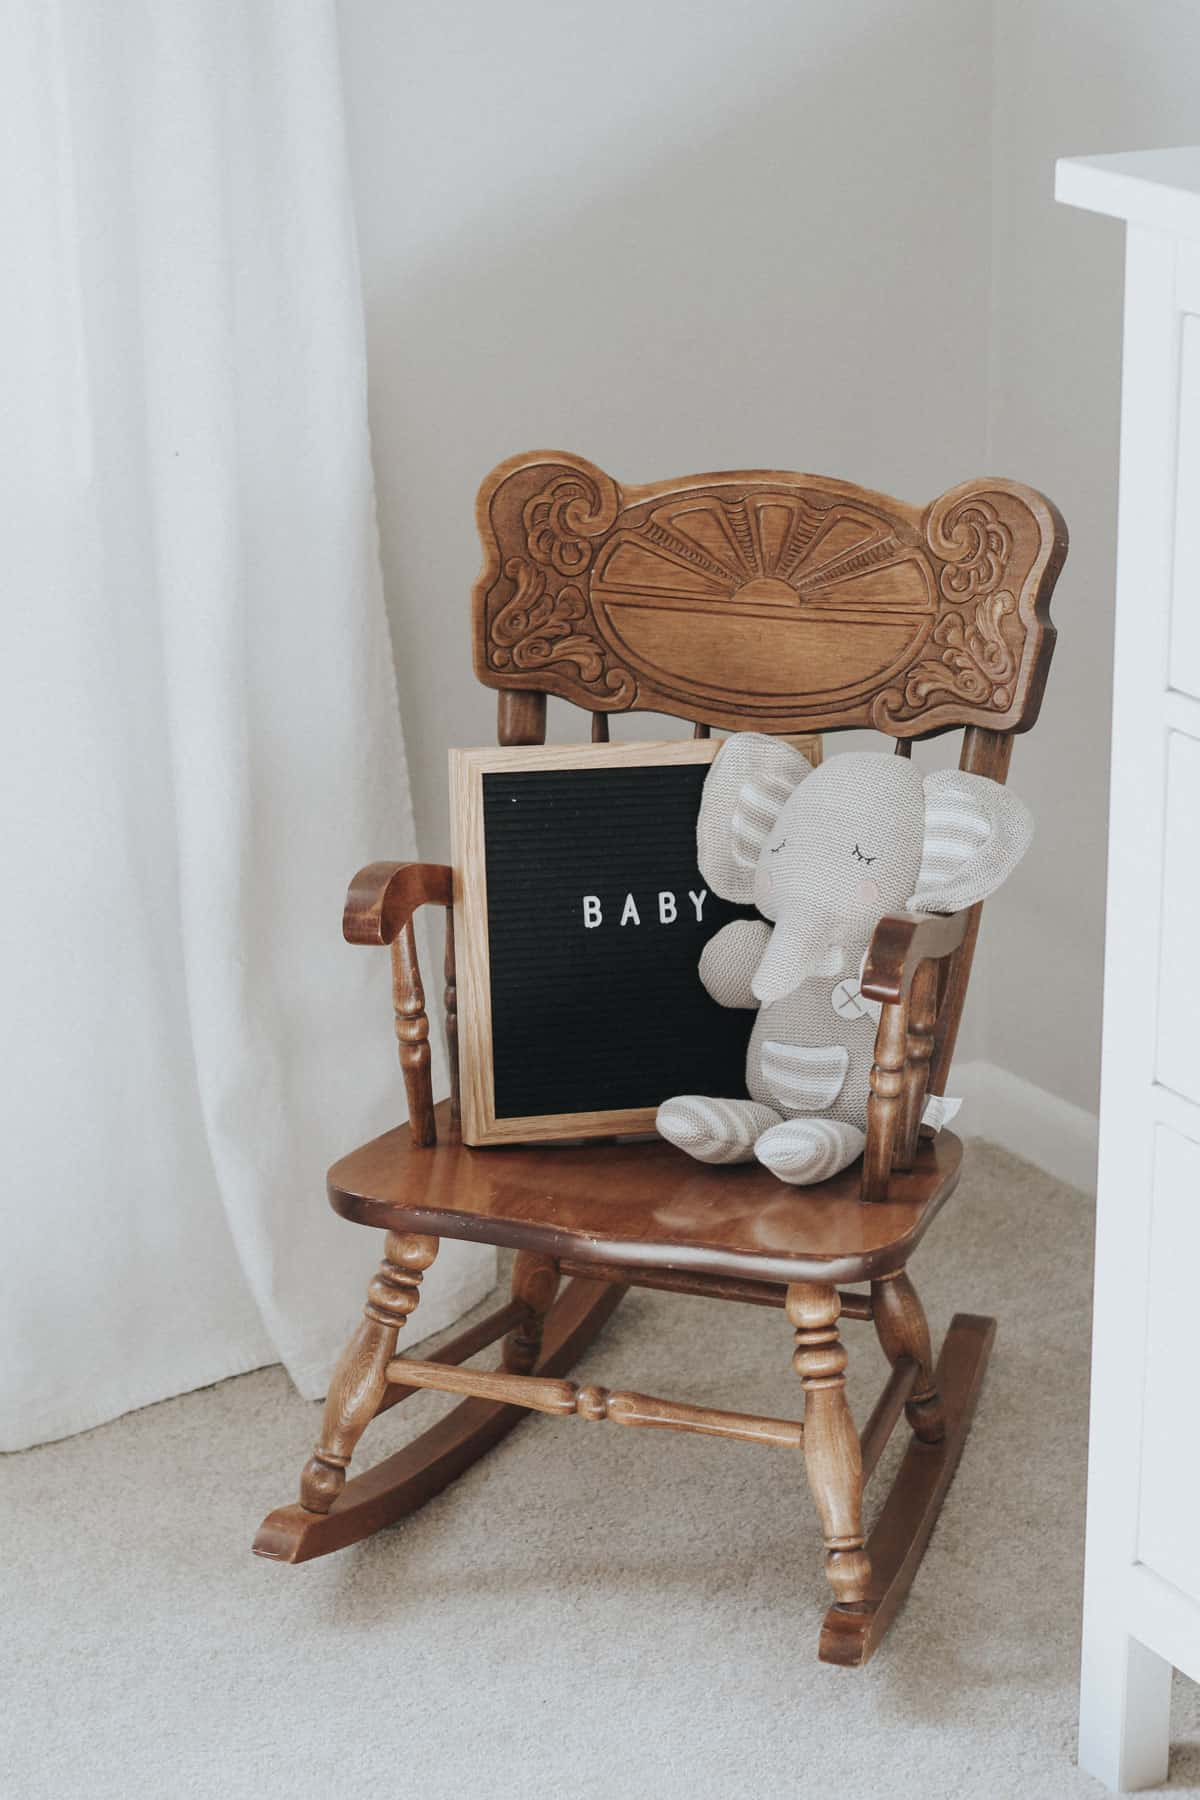 Vintage baby rocking chair in a gray room.